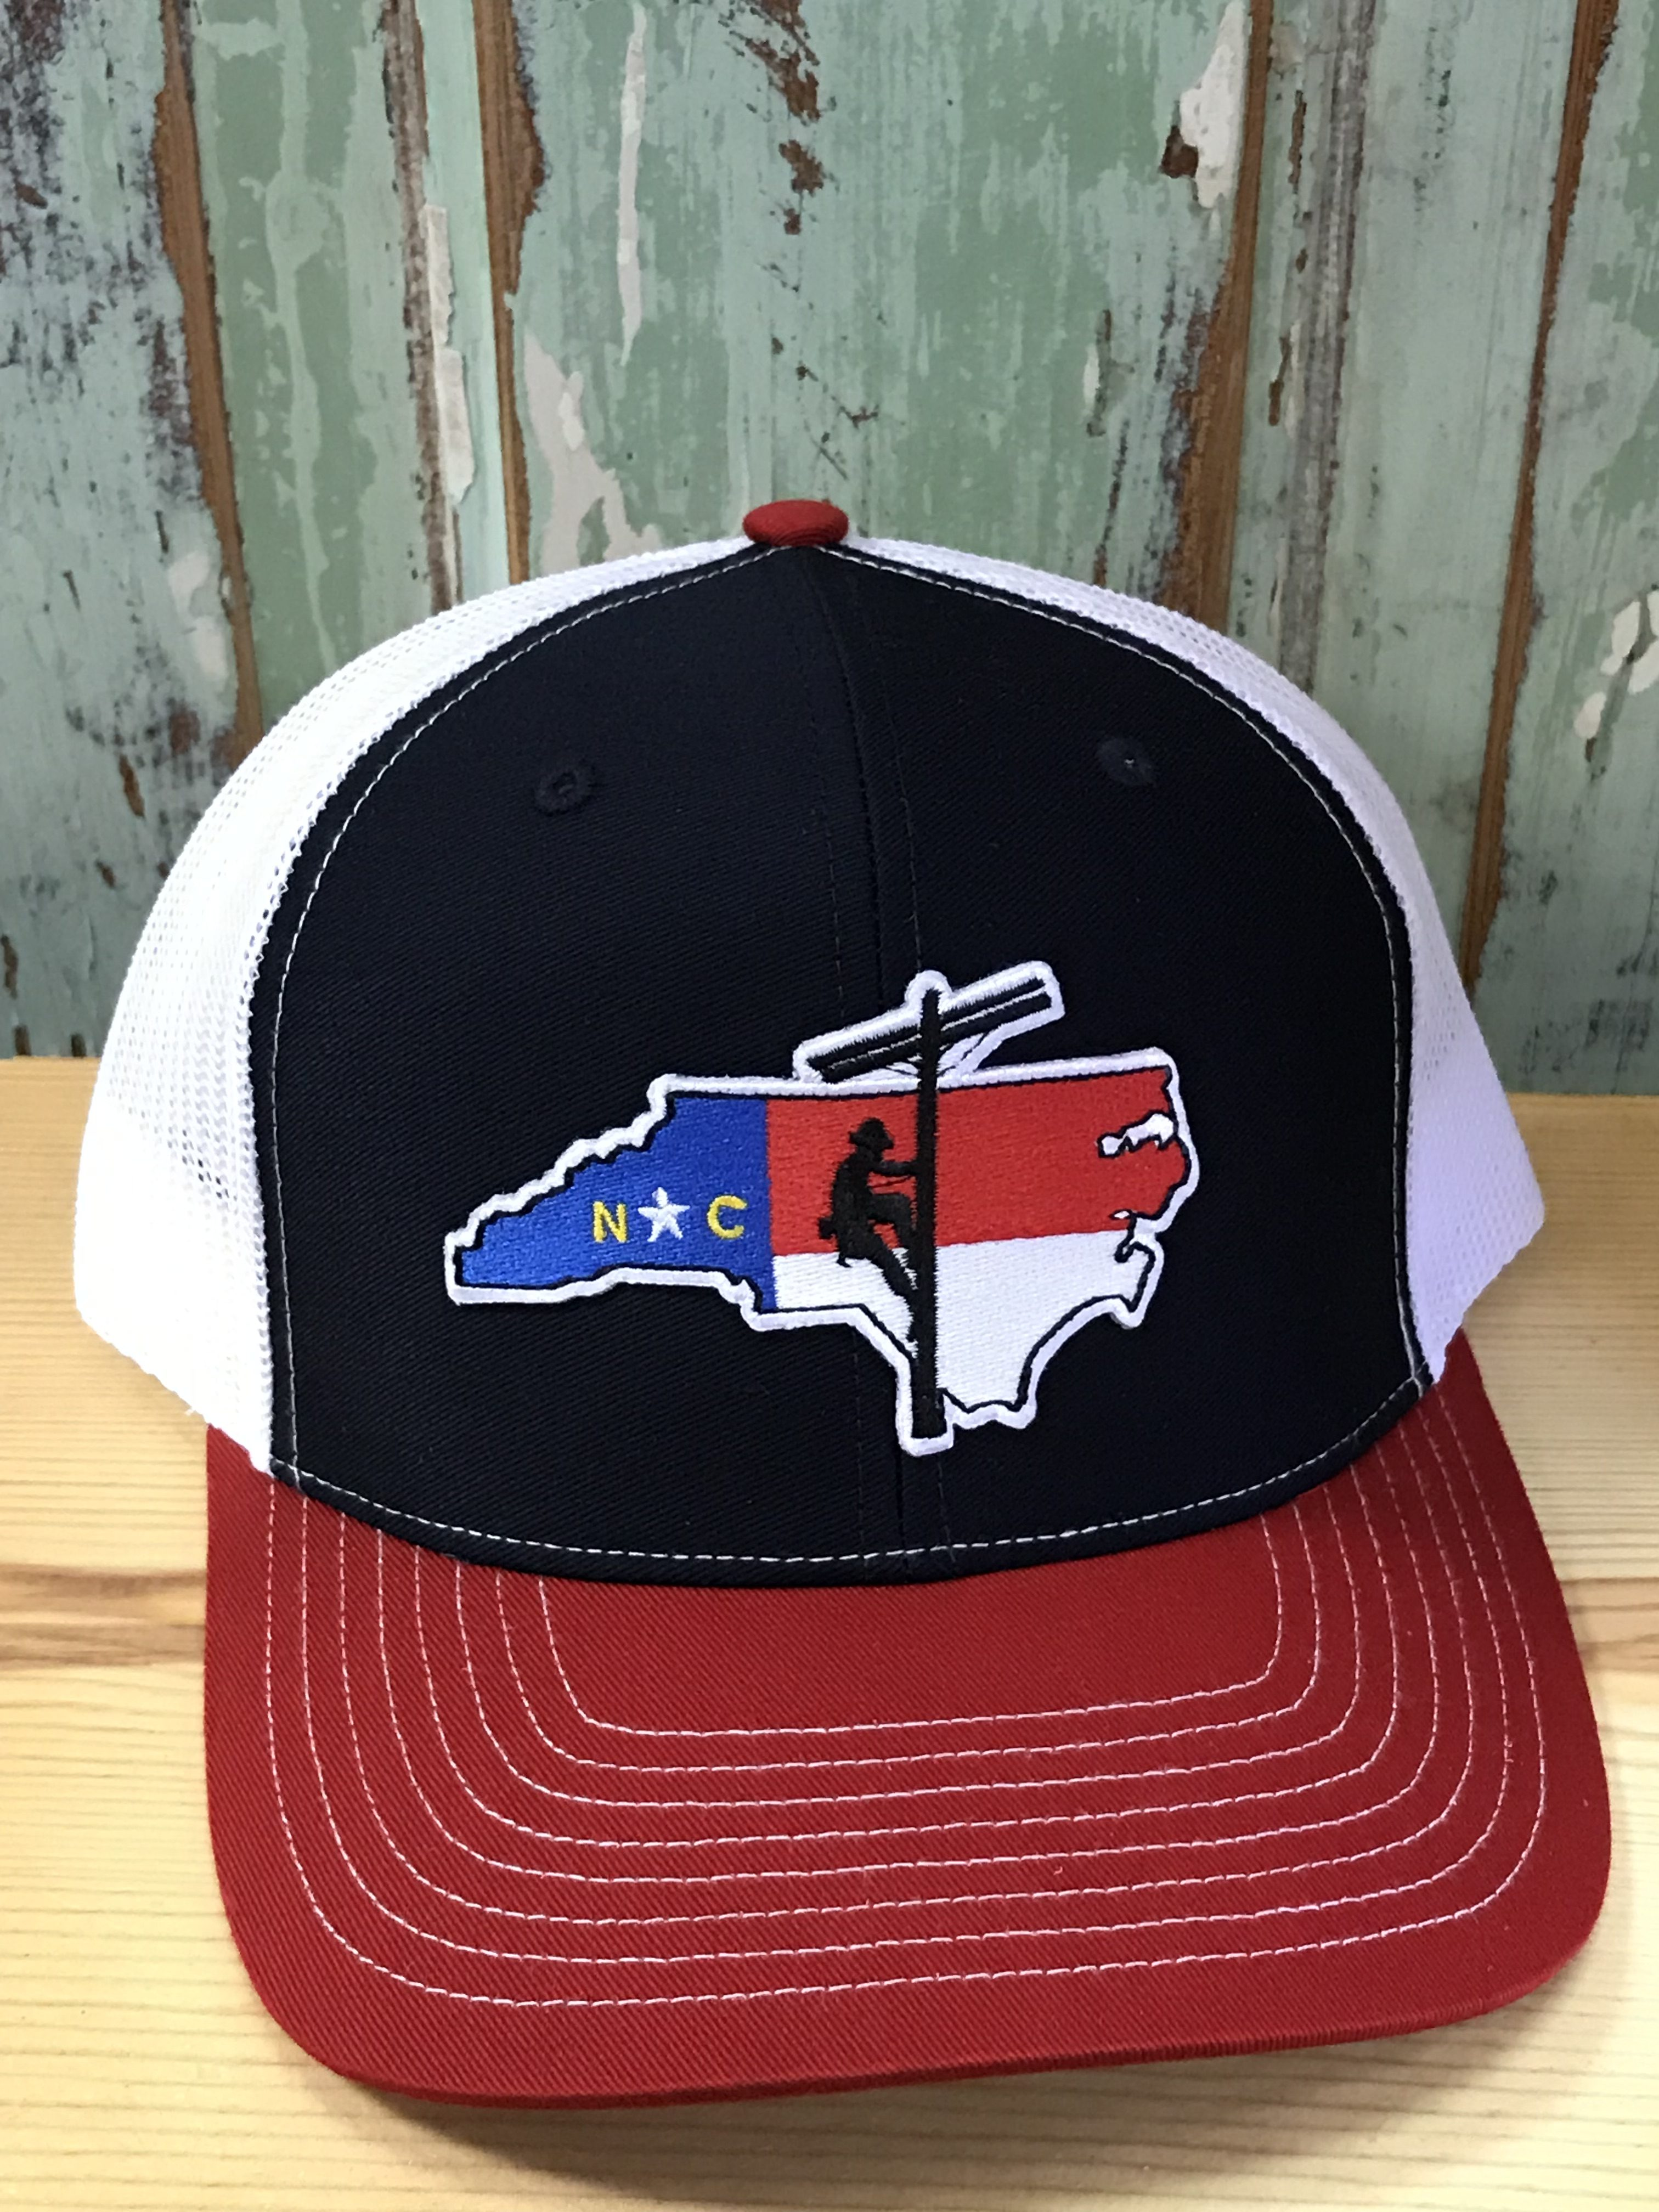 North Carolina Lineman Patch Snapback Trucker Hat Navy Red White  Accessories 8b1ebe323d9